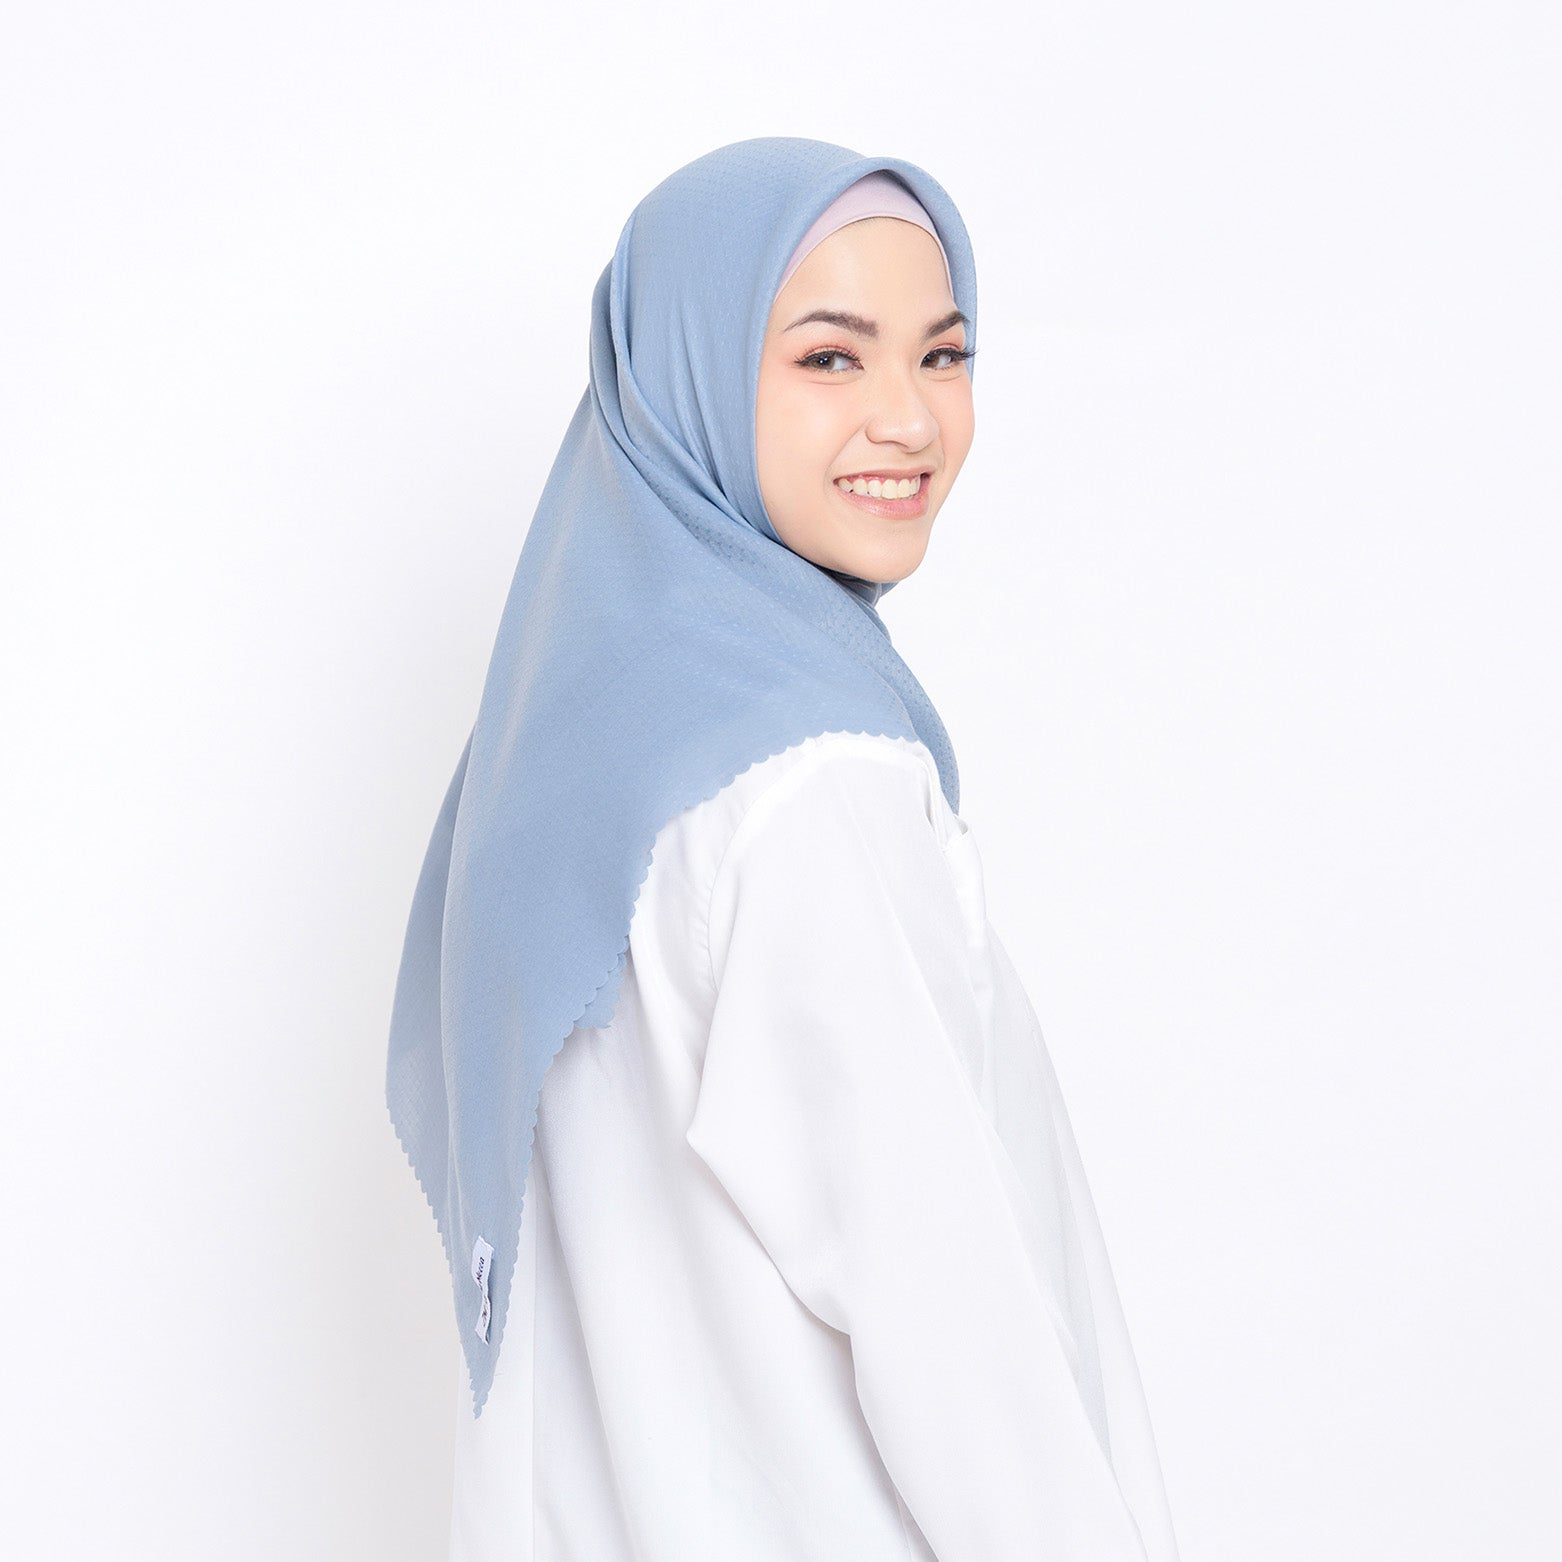 ZM - Lana Mint Hijab ( Wangi Water Splash )